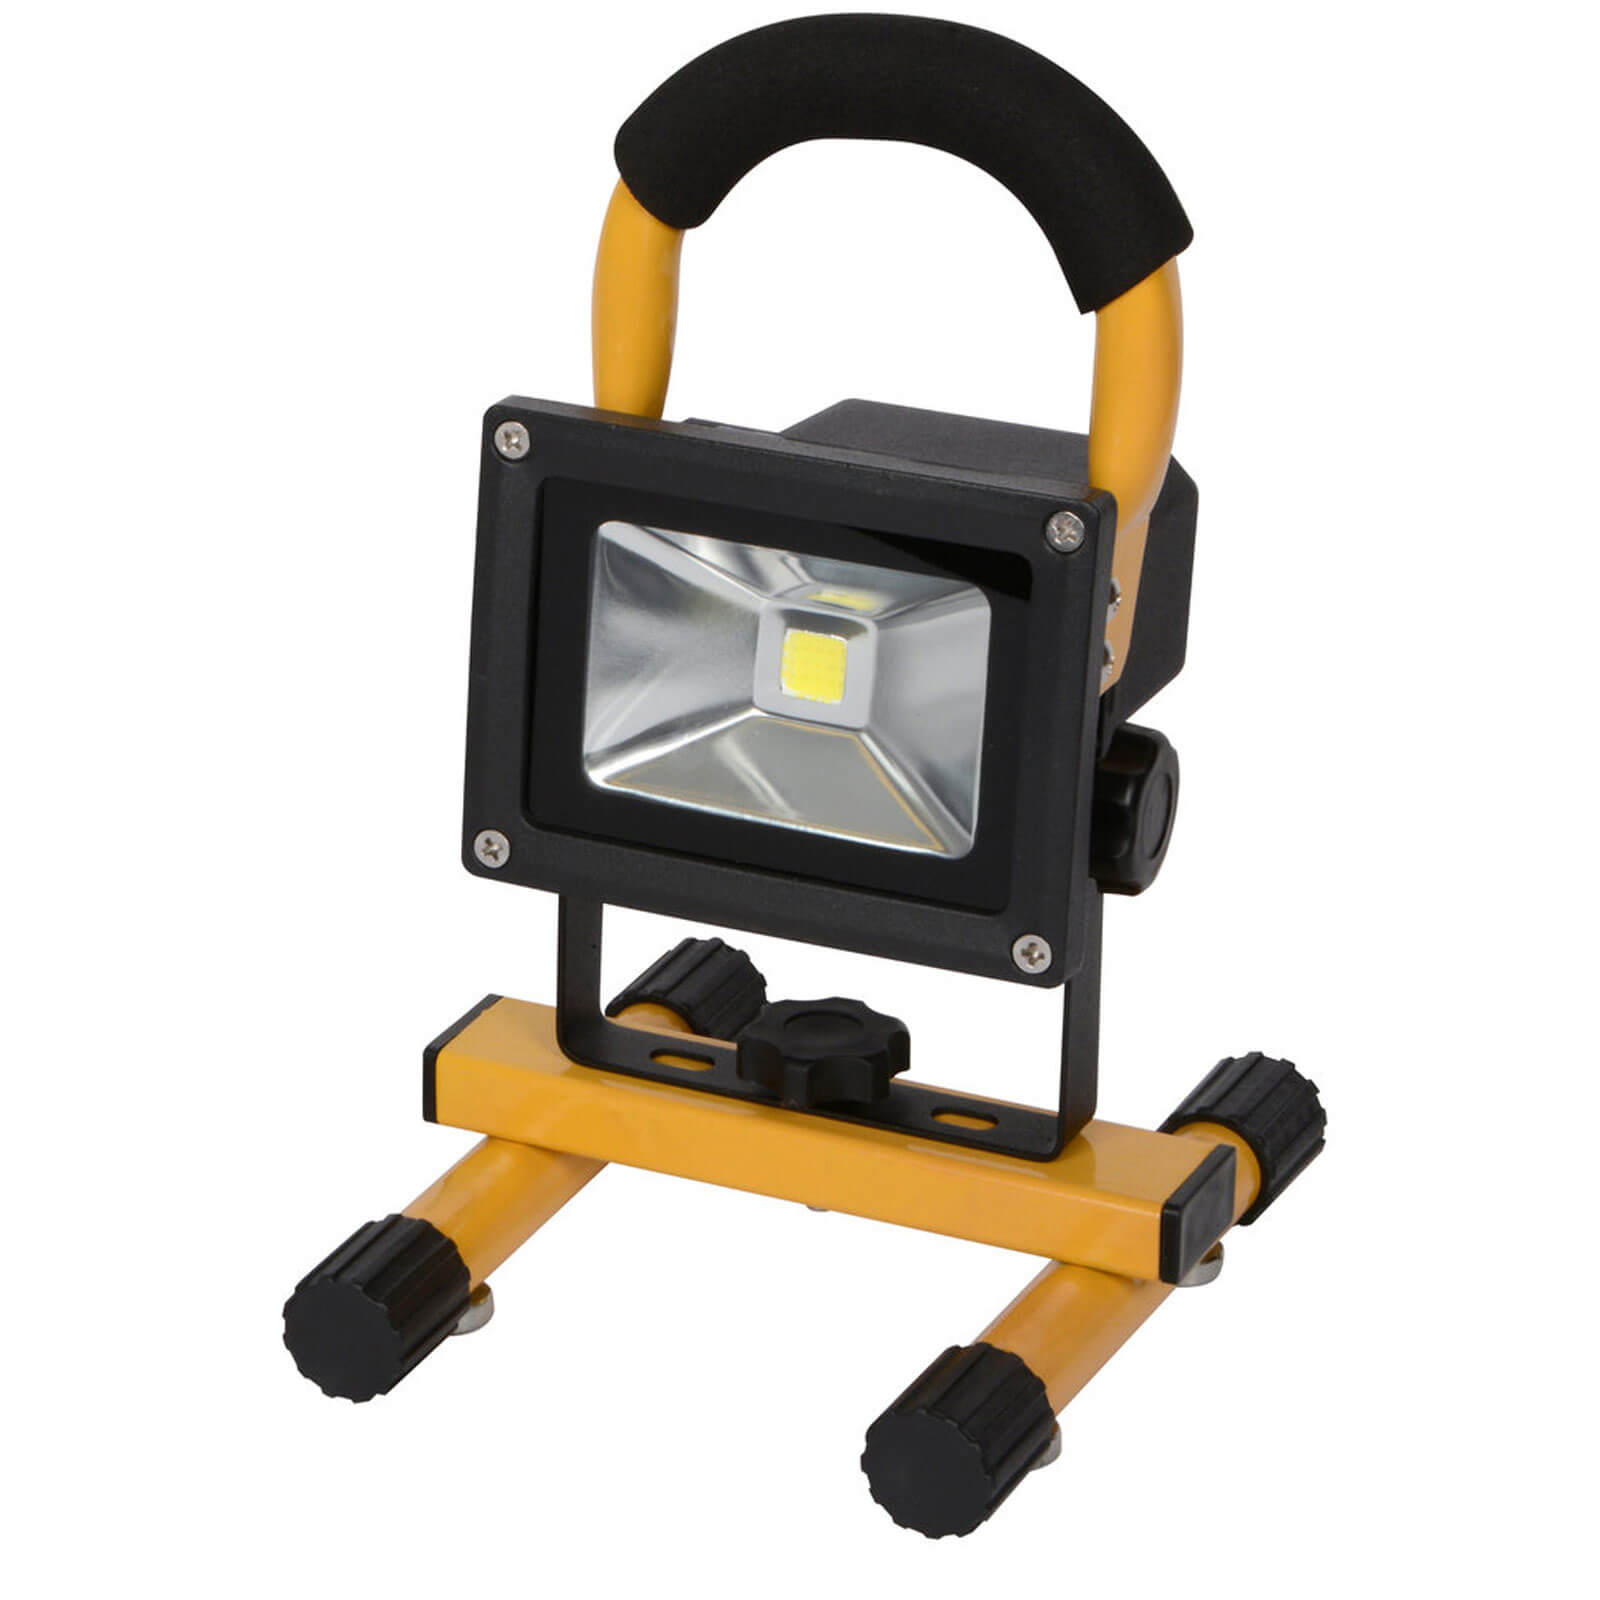 Image of CK LED Rechargeable Flood Light 600 Lumens with Integral Li-ion Battery 10w